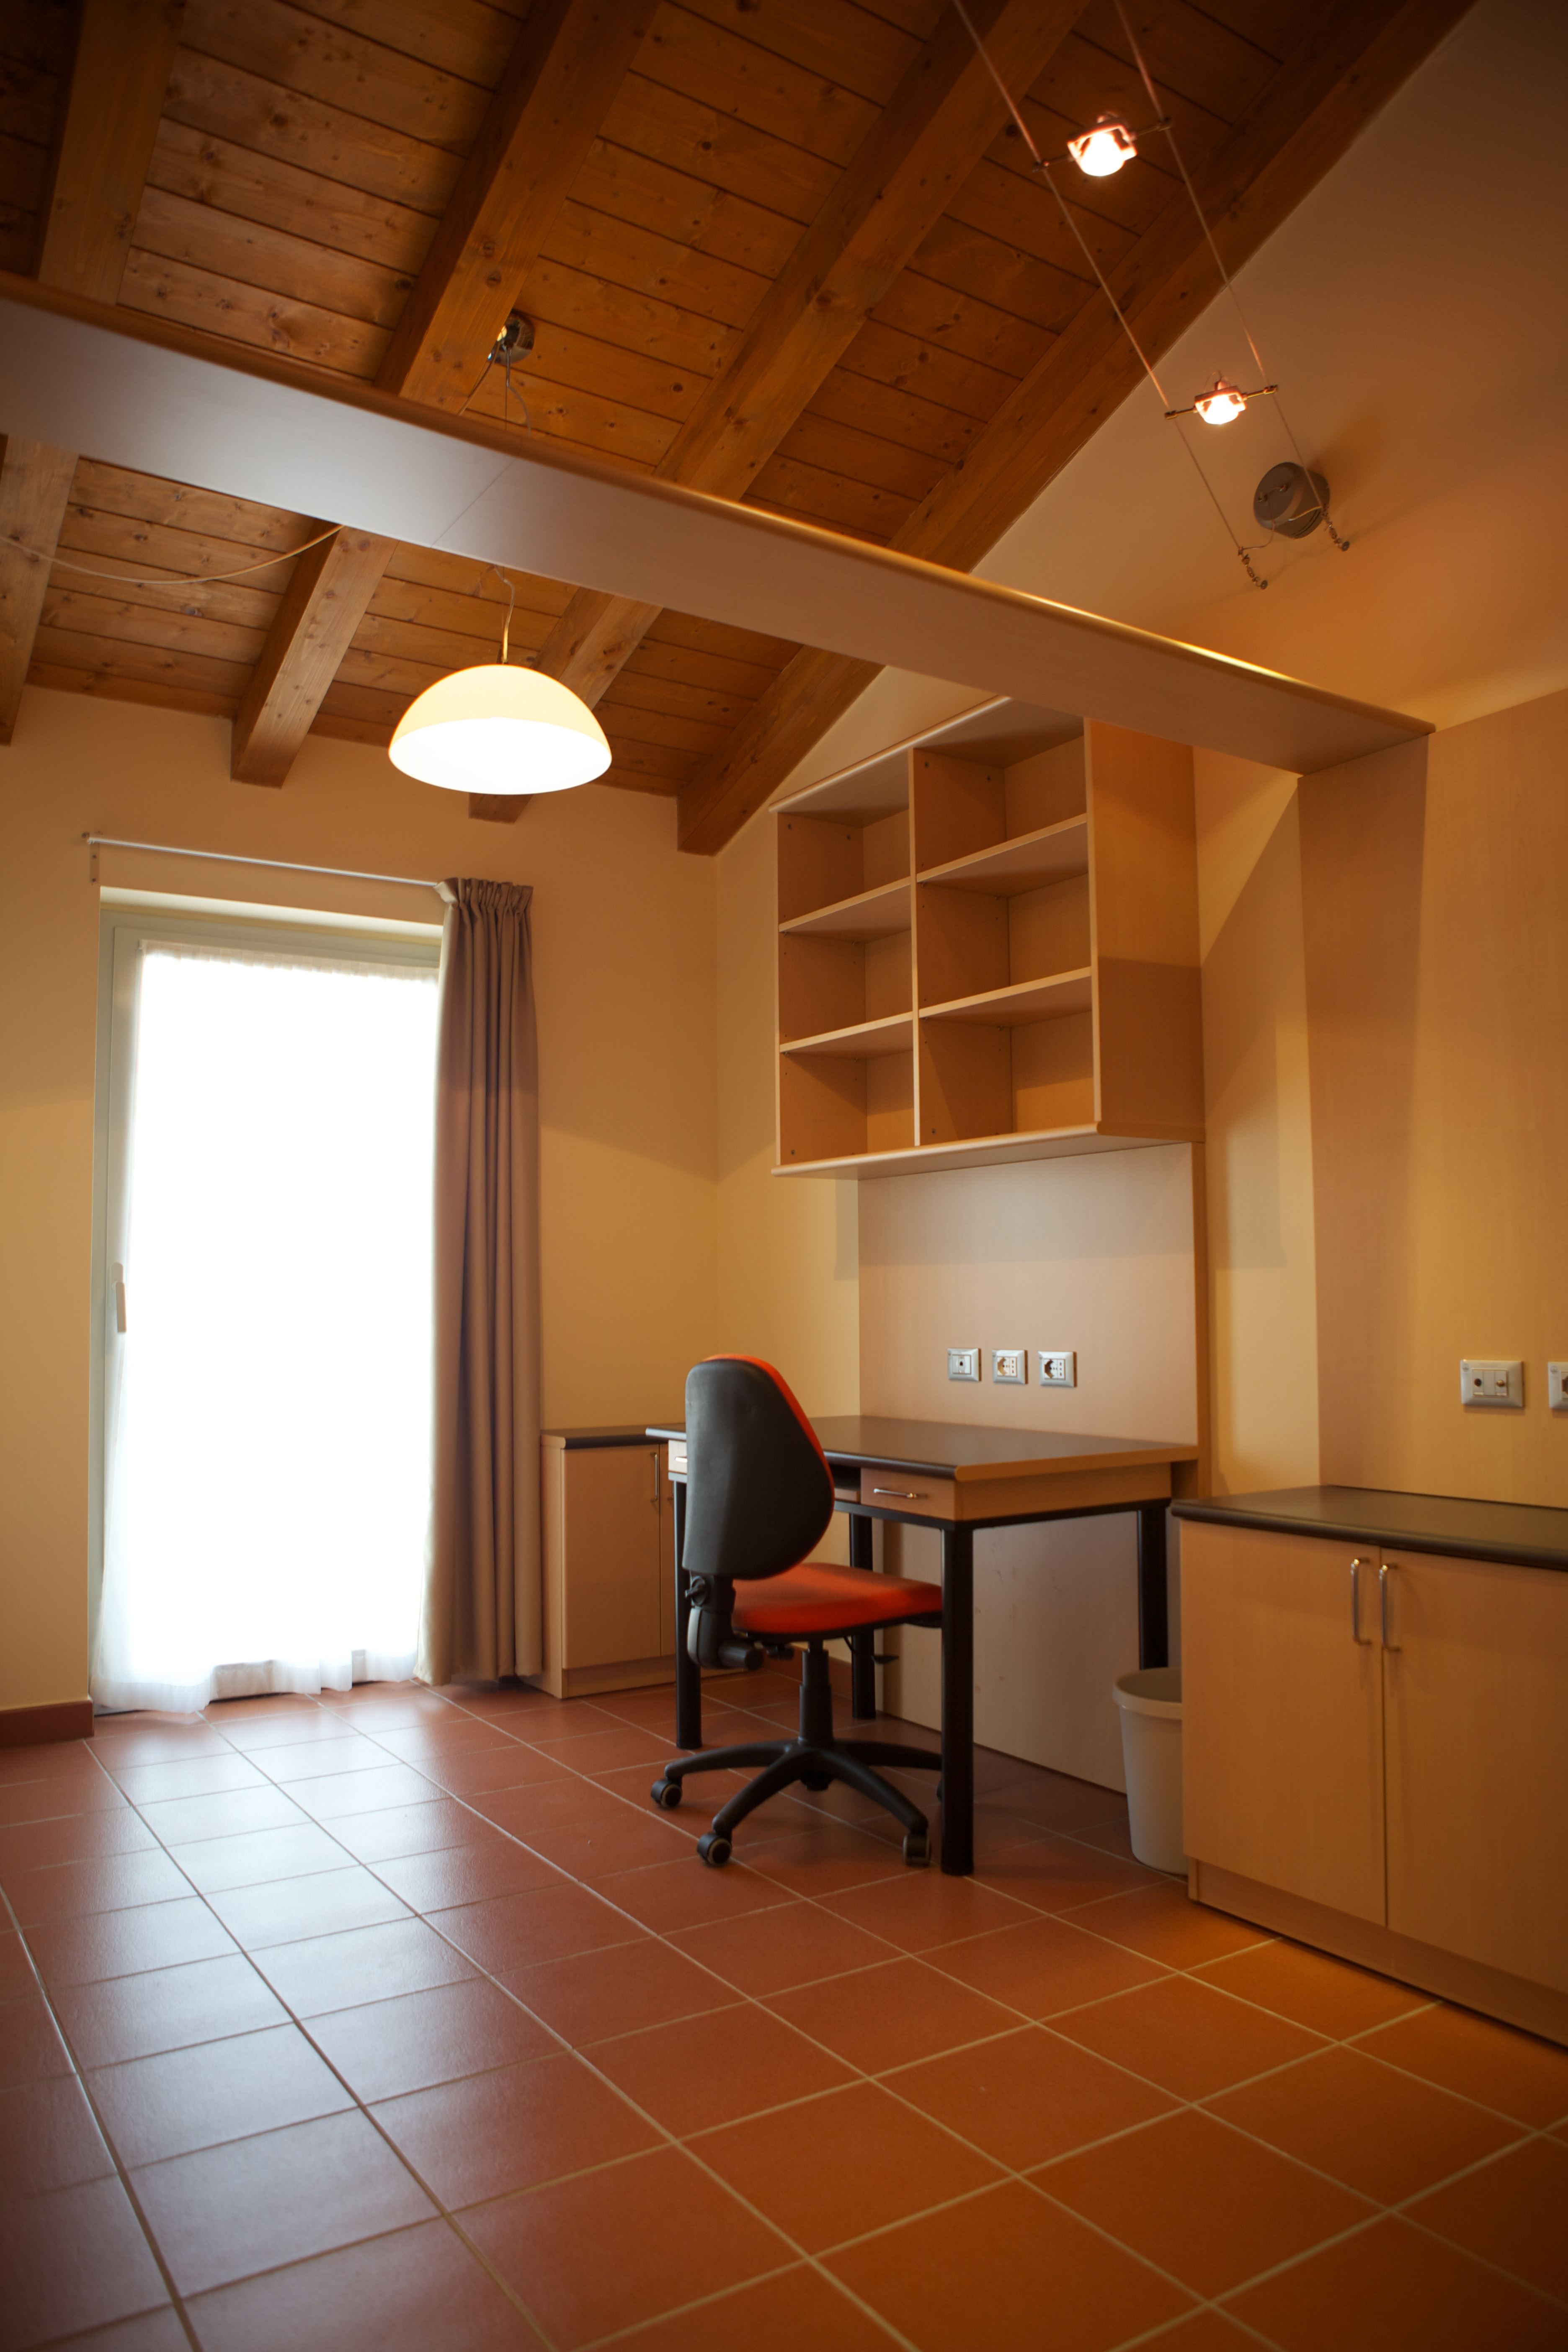 Student Accomodation for rent in single room in Str. Anselma, 9, in Piacenza, Italy